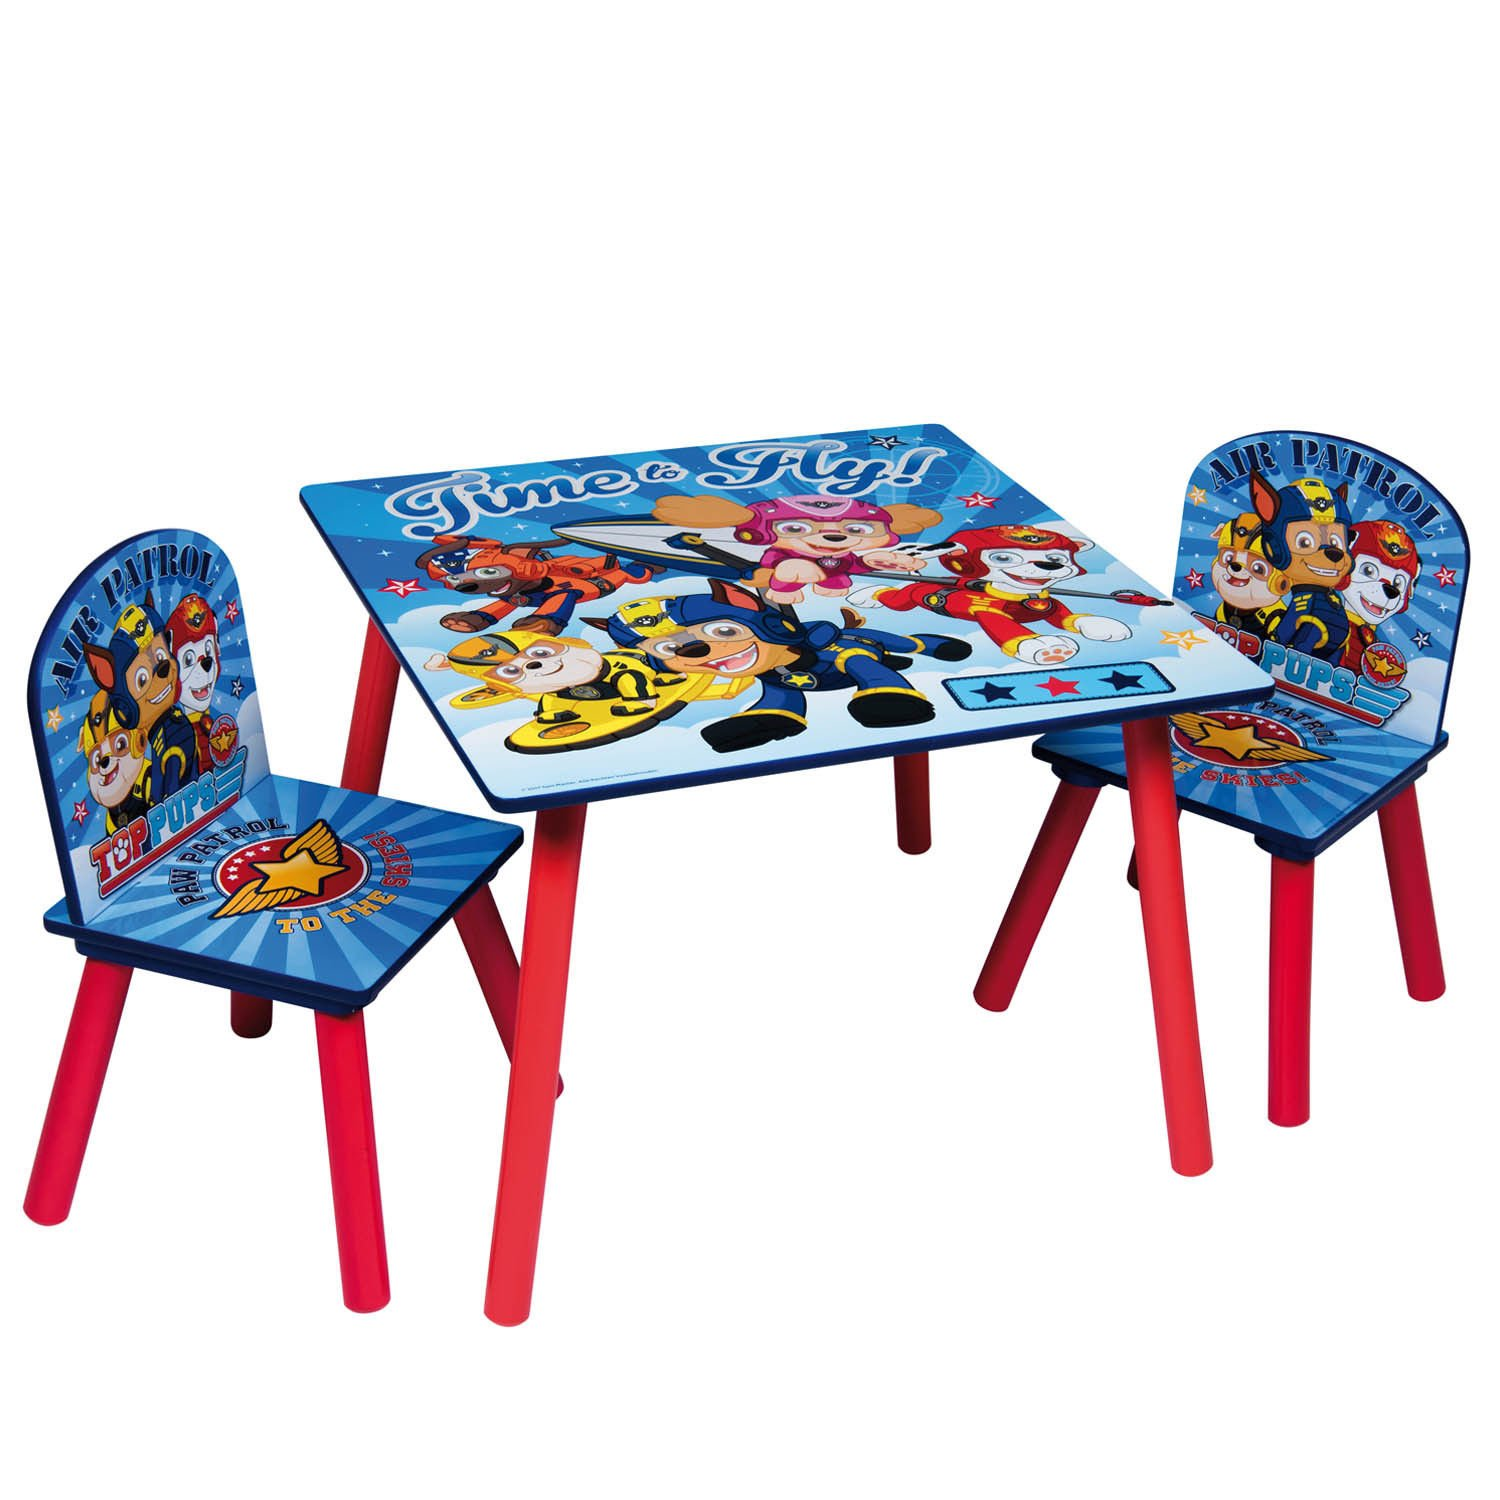 Paw Patrol Kids Wooden Table & 2 Chairs Set - Indoor Childrens Toddlers Playroom Furniture Global